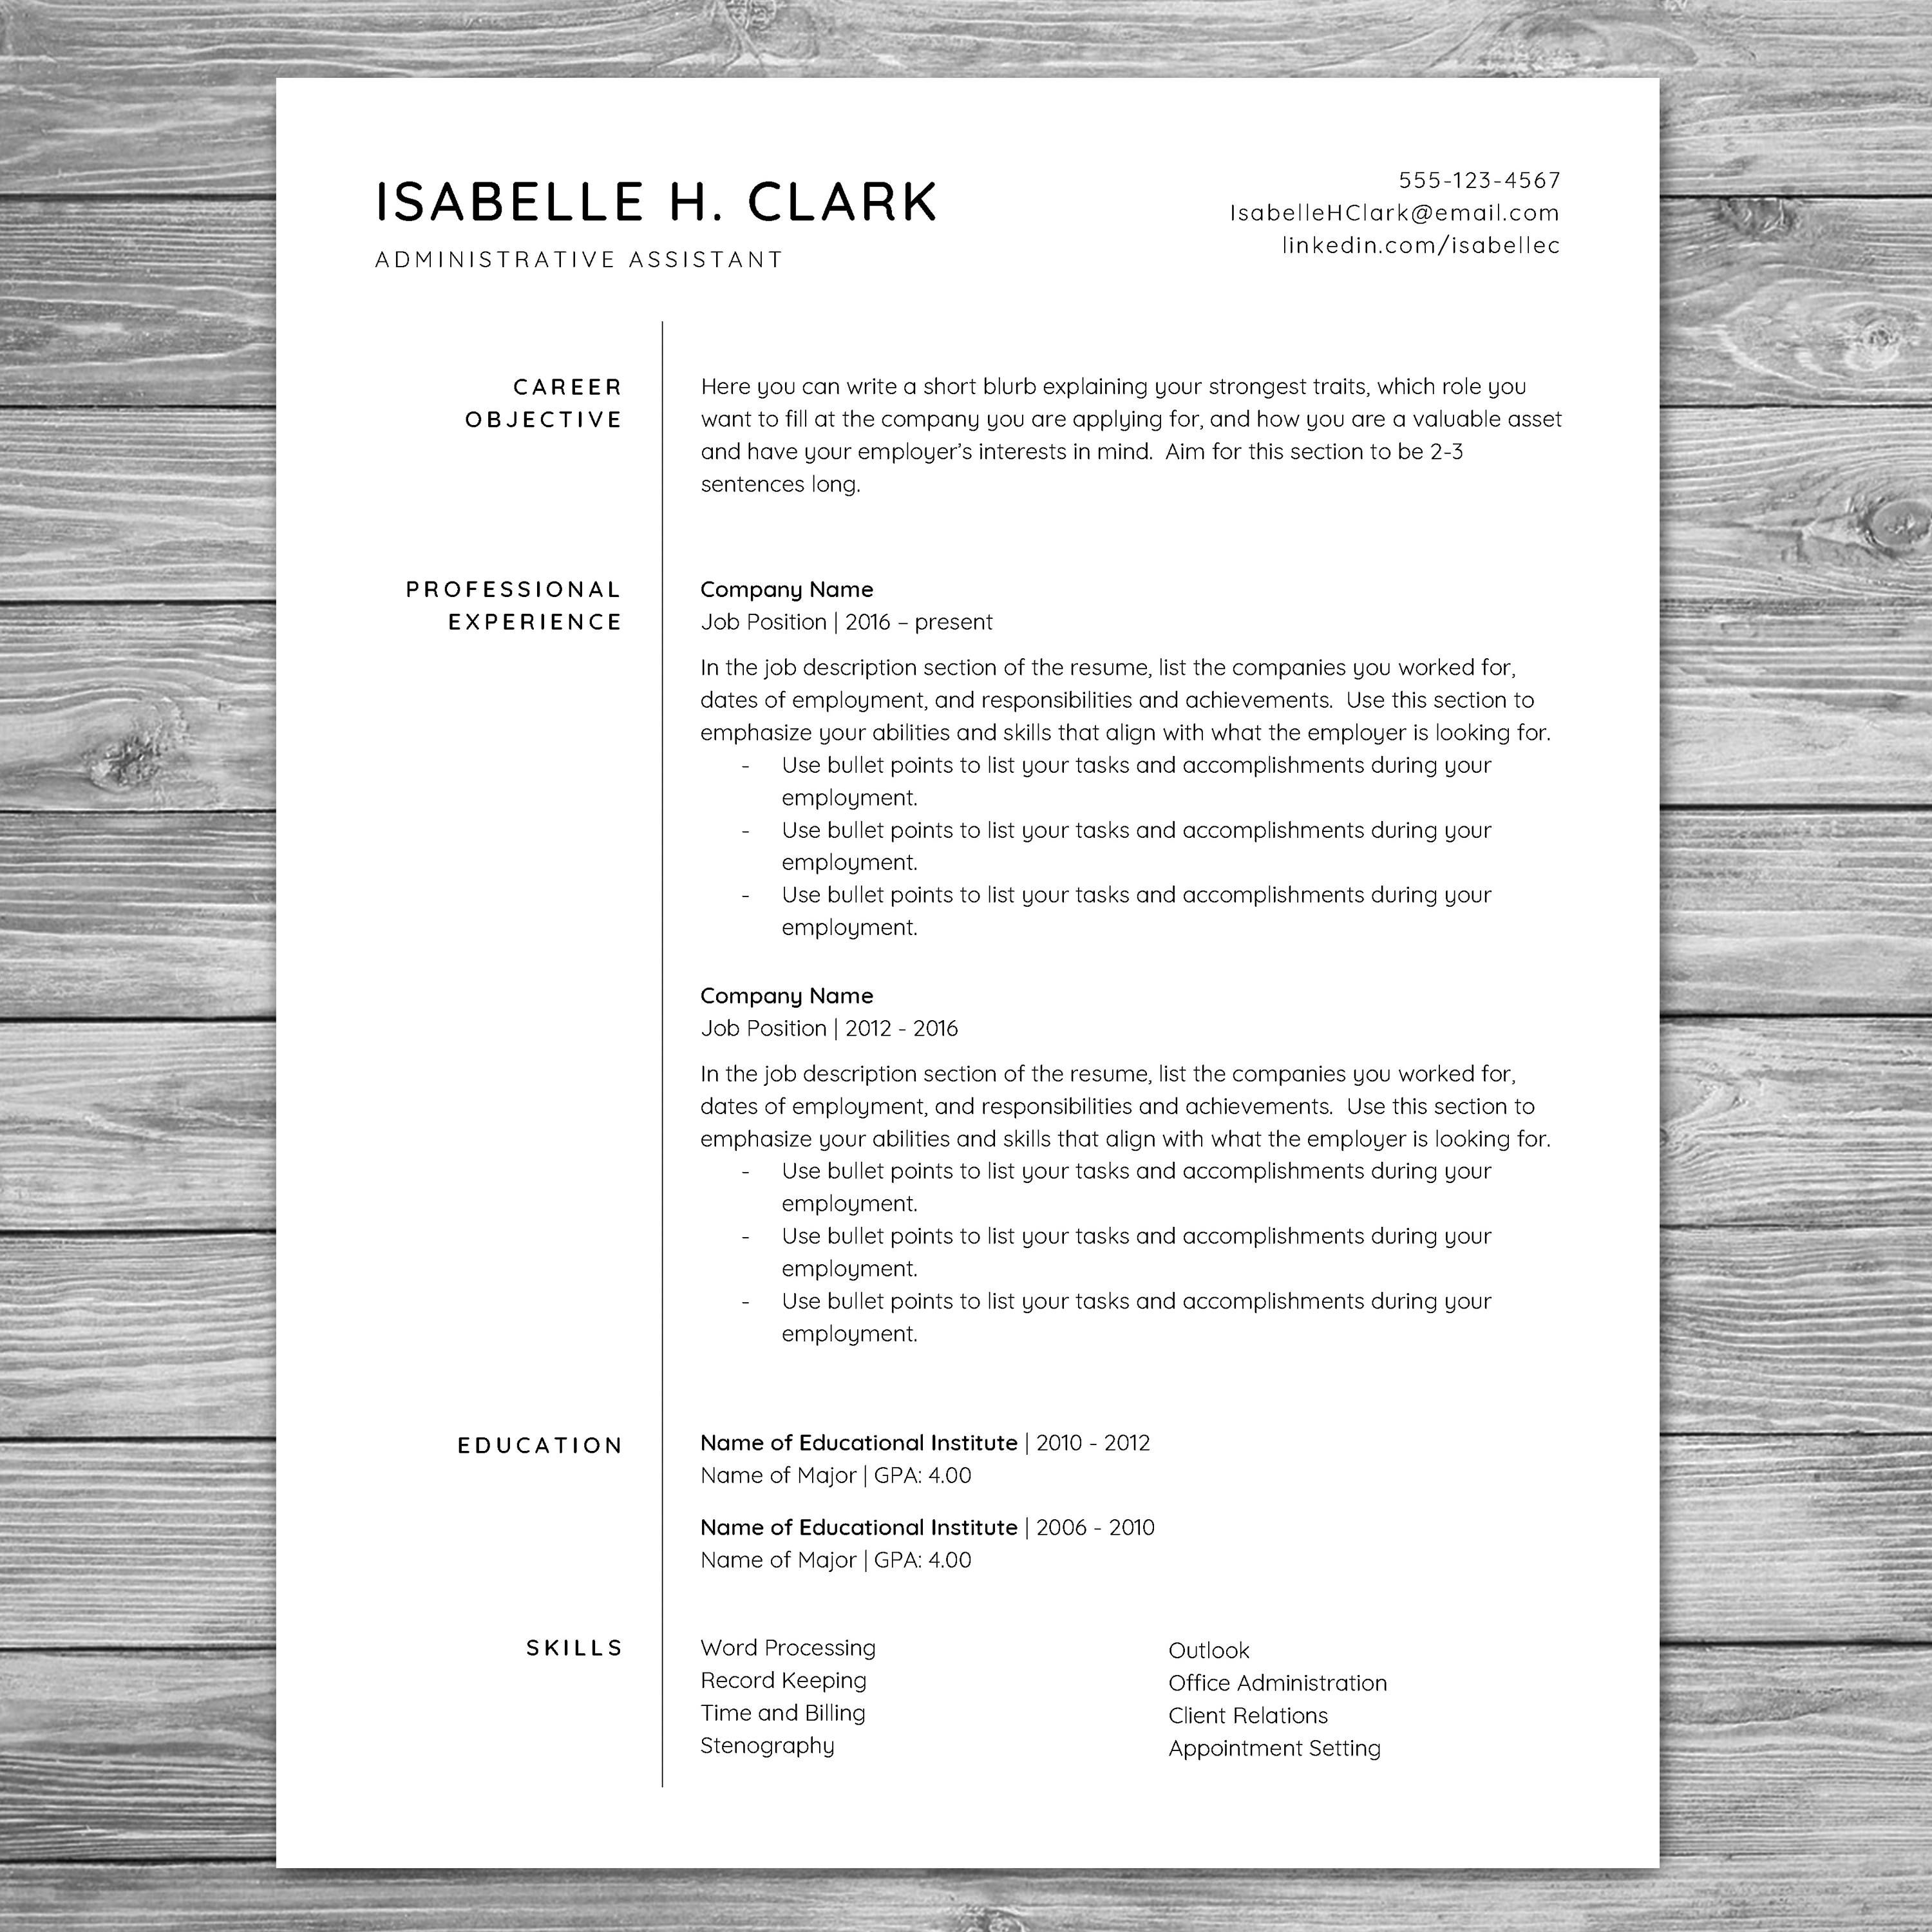 Professional Minimalist Resume Template Cv Template Printable Resume Instant Download Cover Letter Reference Sheet 8 5 X 11 A4 Http Etsy Me 2i Bewerbung